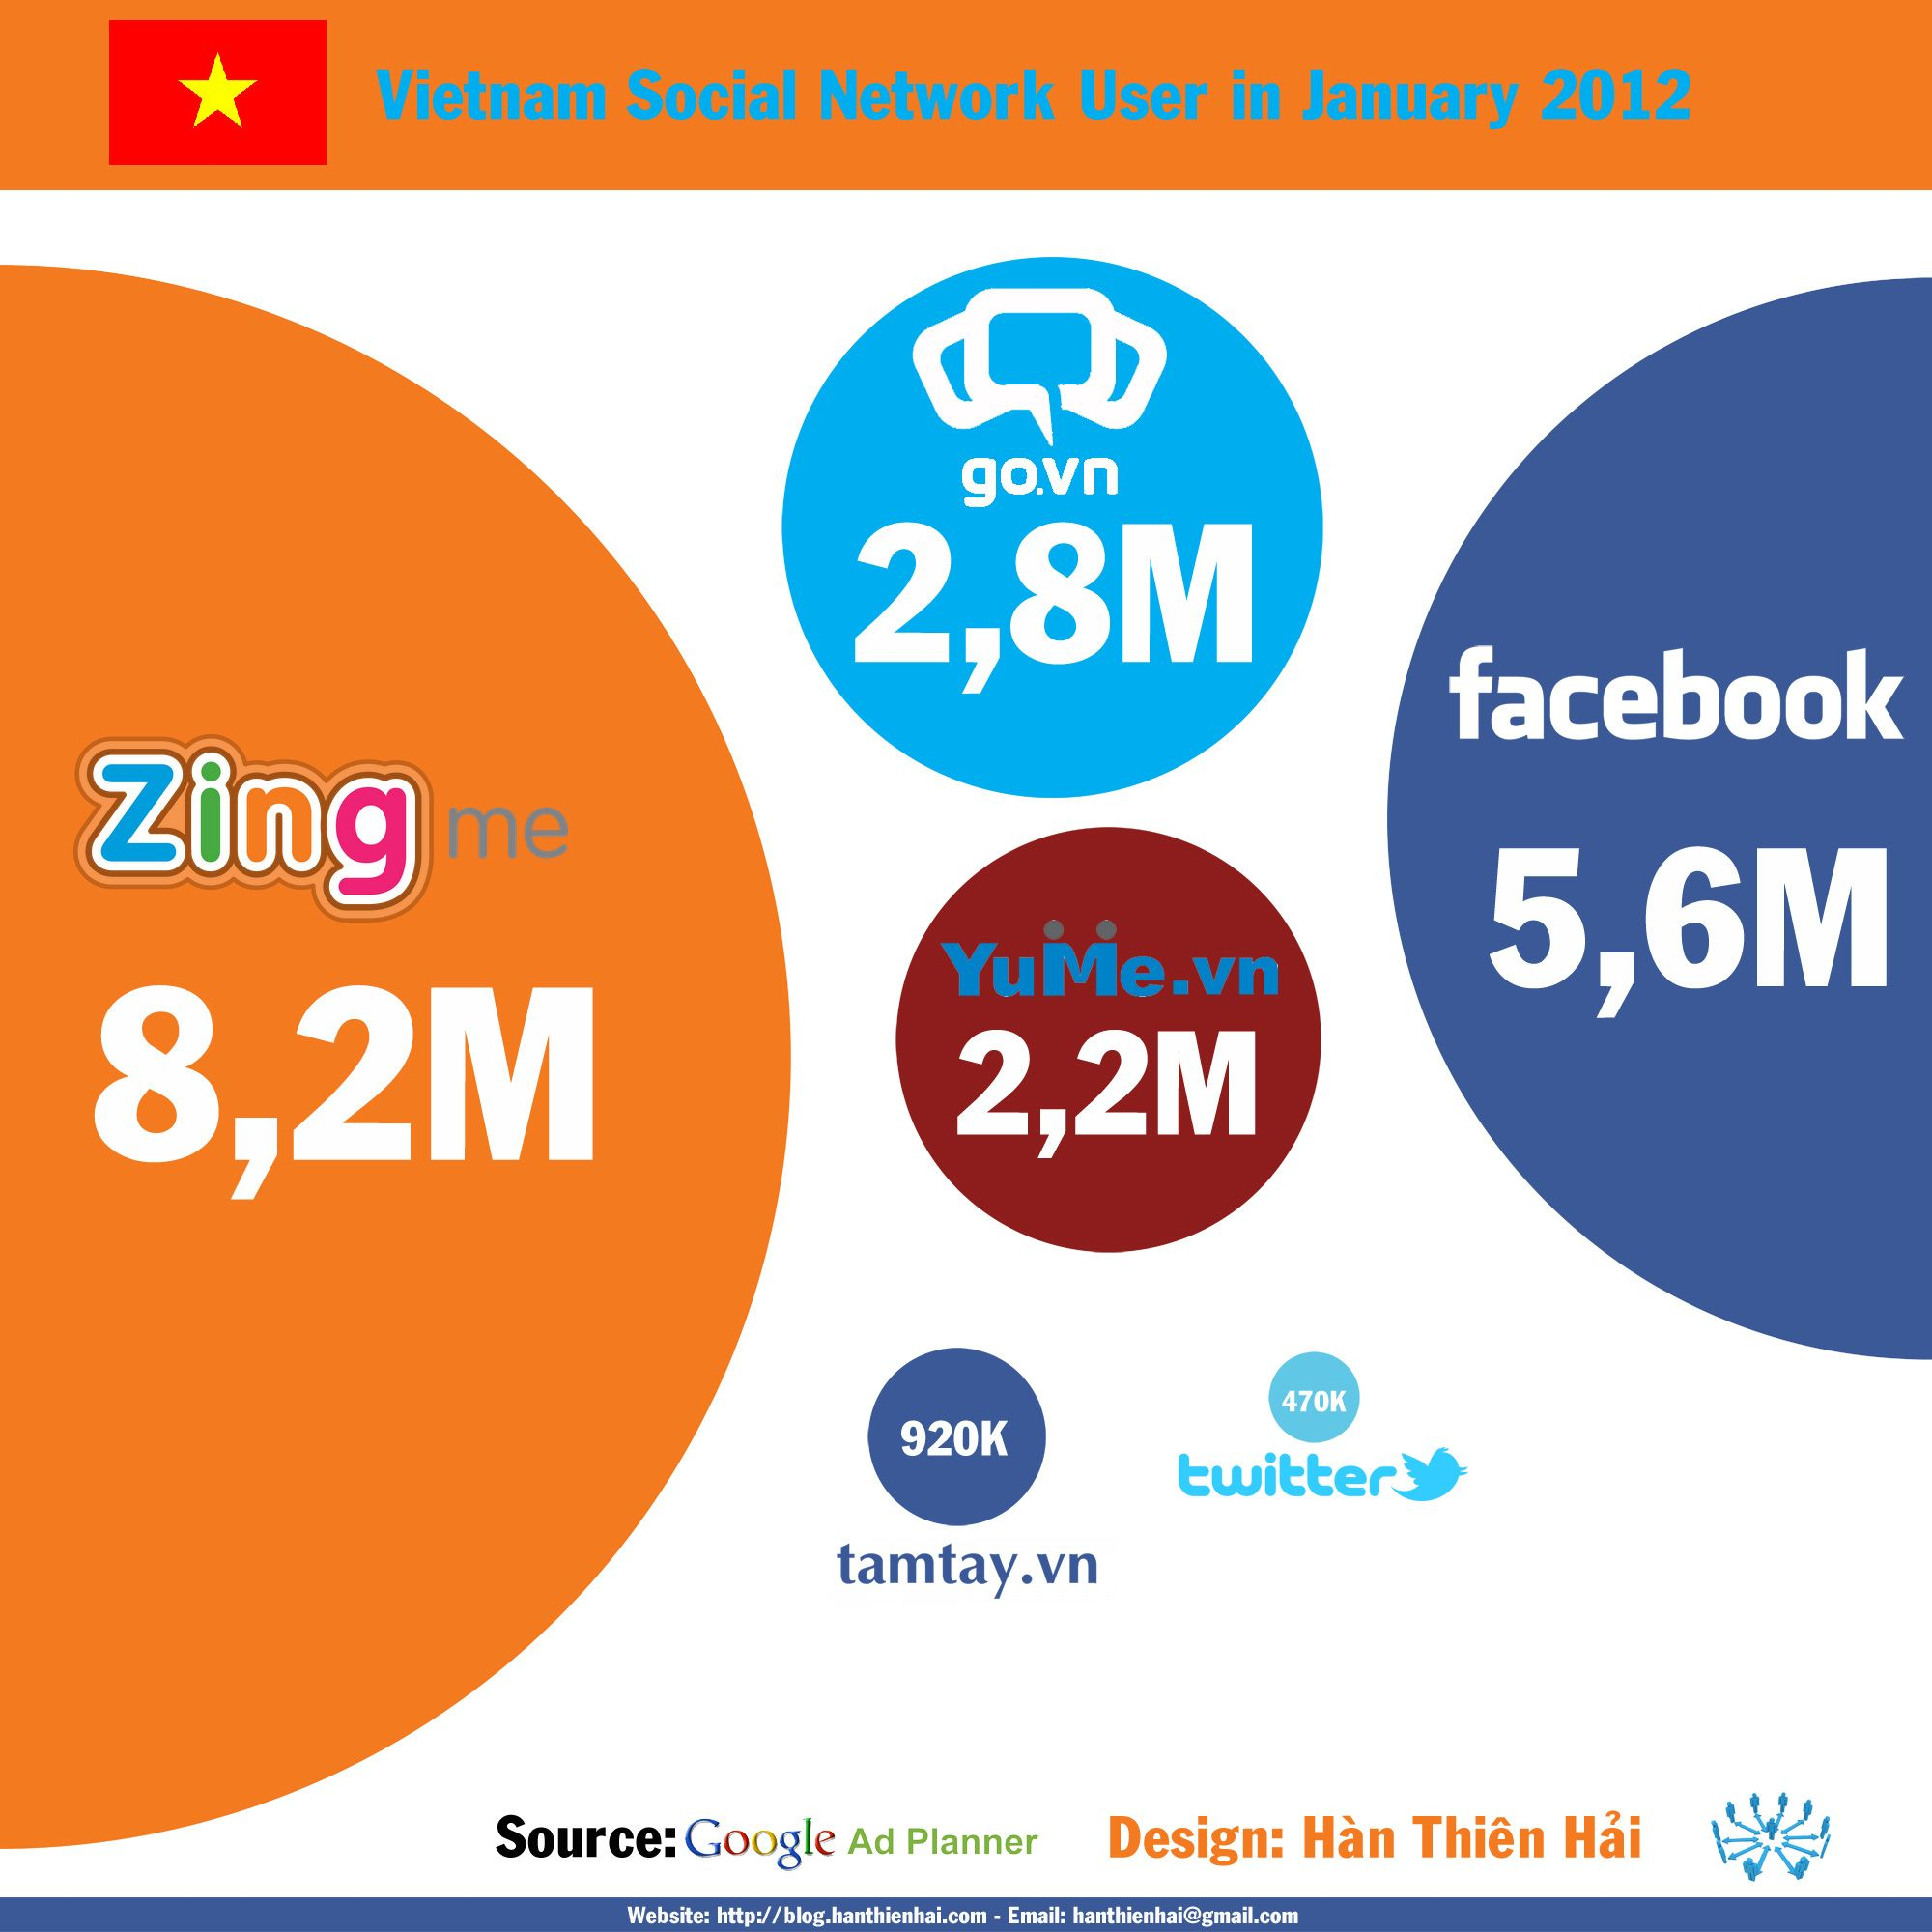 Vietnam Social Network Users In January 2012 Infographic Social Media Infographic Social Media Apps Infographic